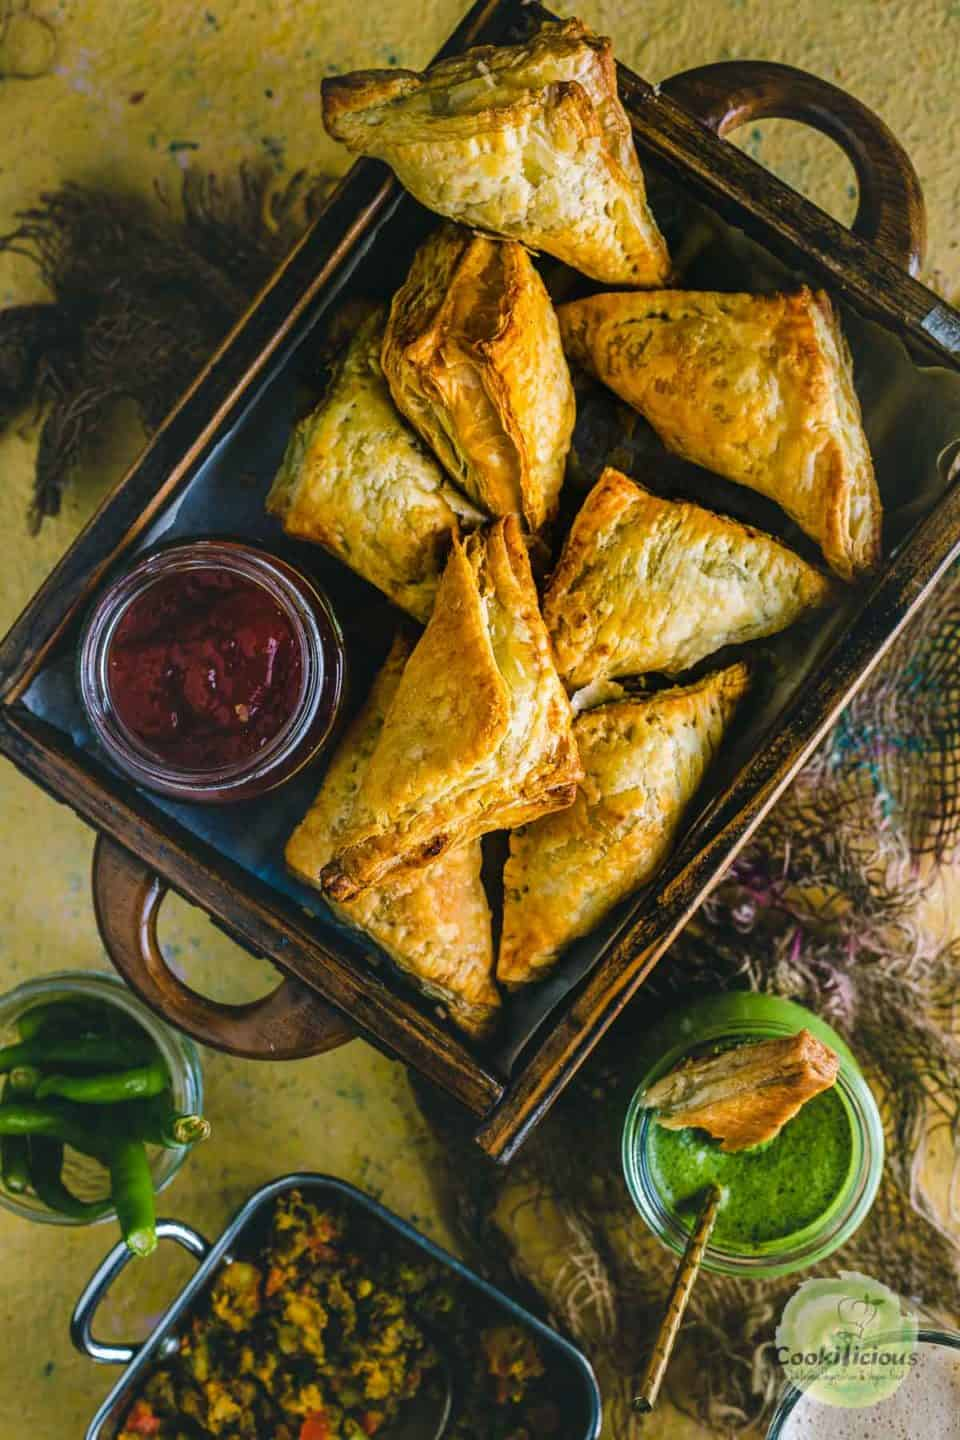 Vegetable Puff Pastry Samosa served in a wooden tray